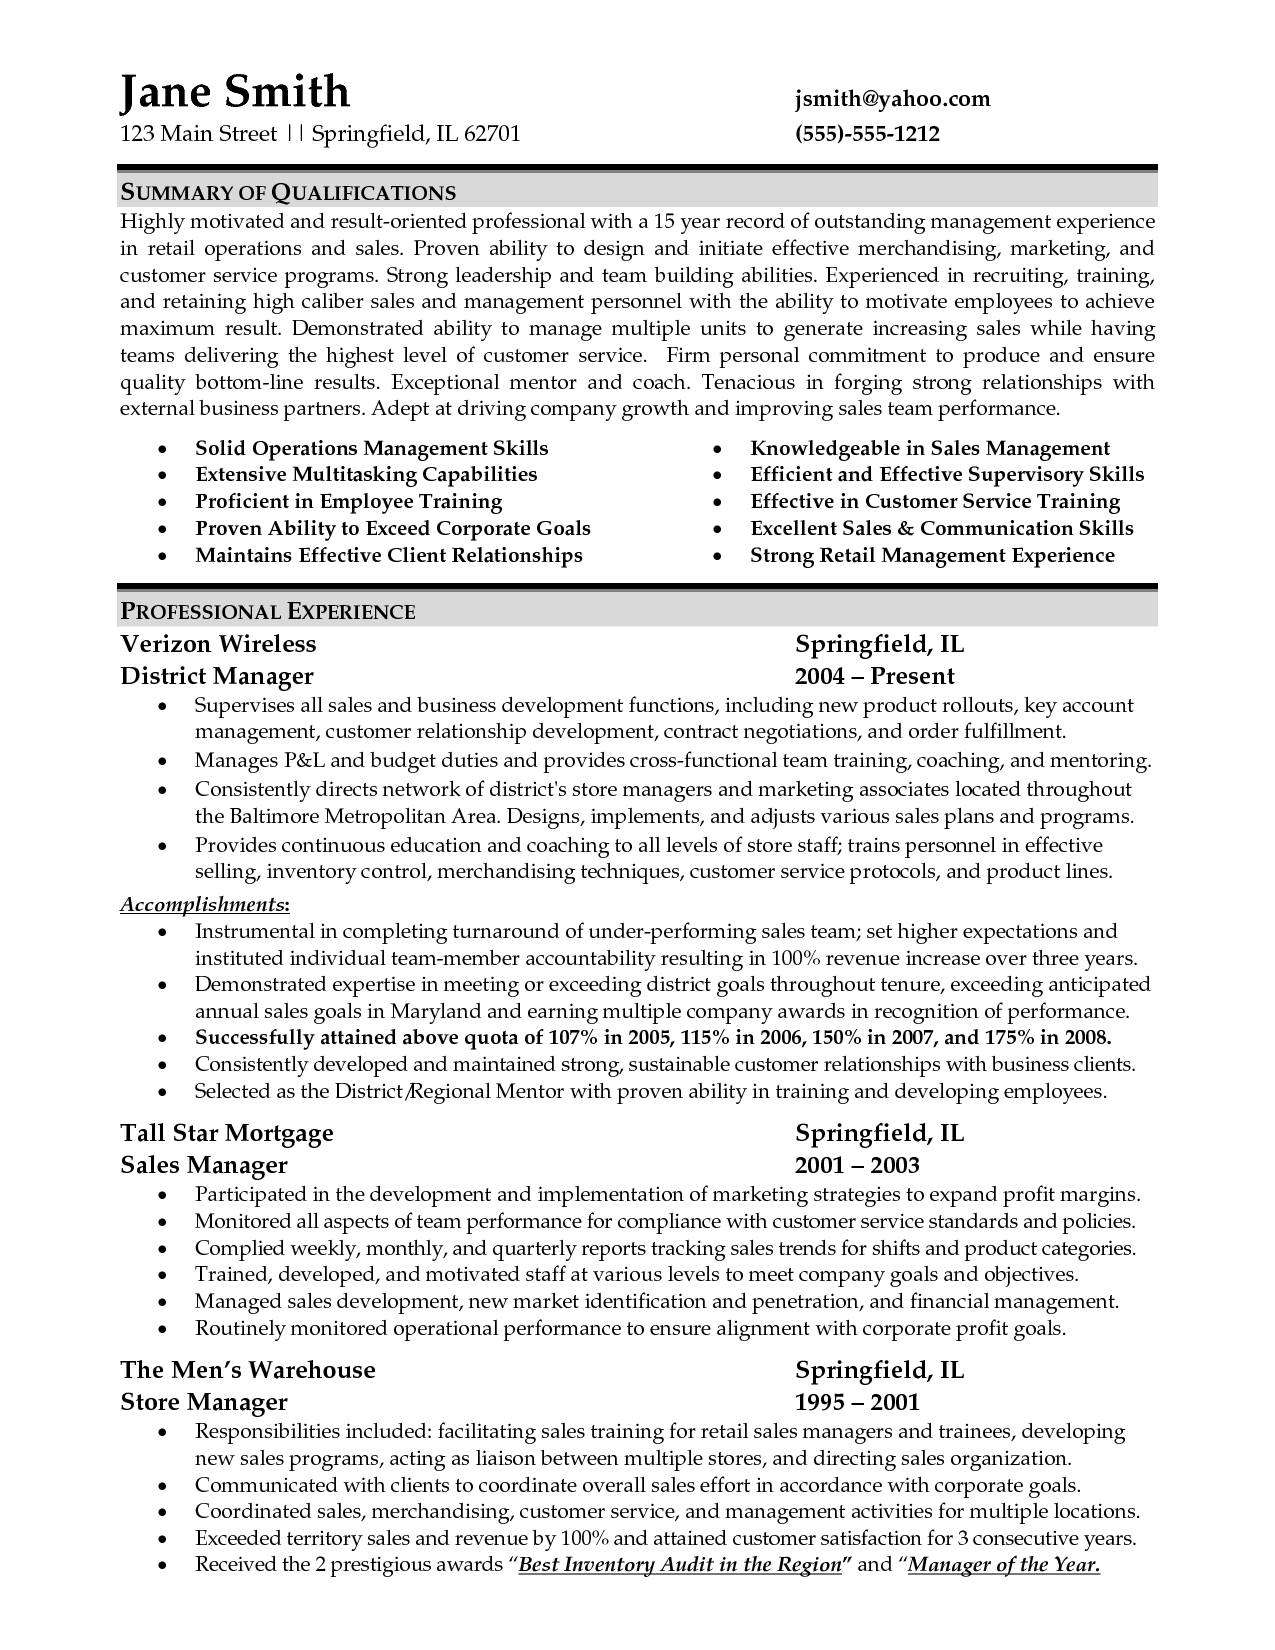 resume Retail Manager Resume sample resume for retail management job store manager district summary